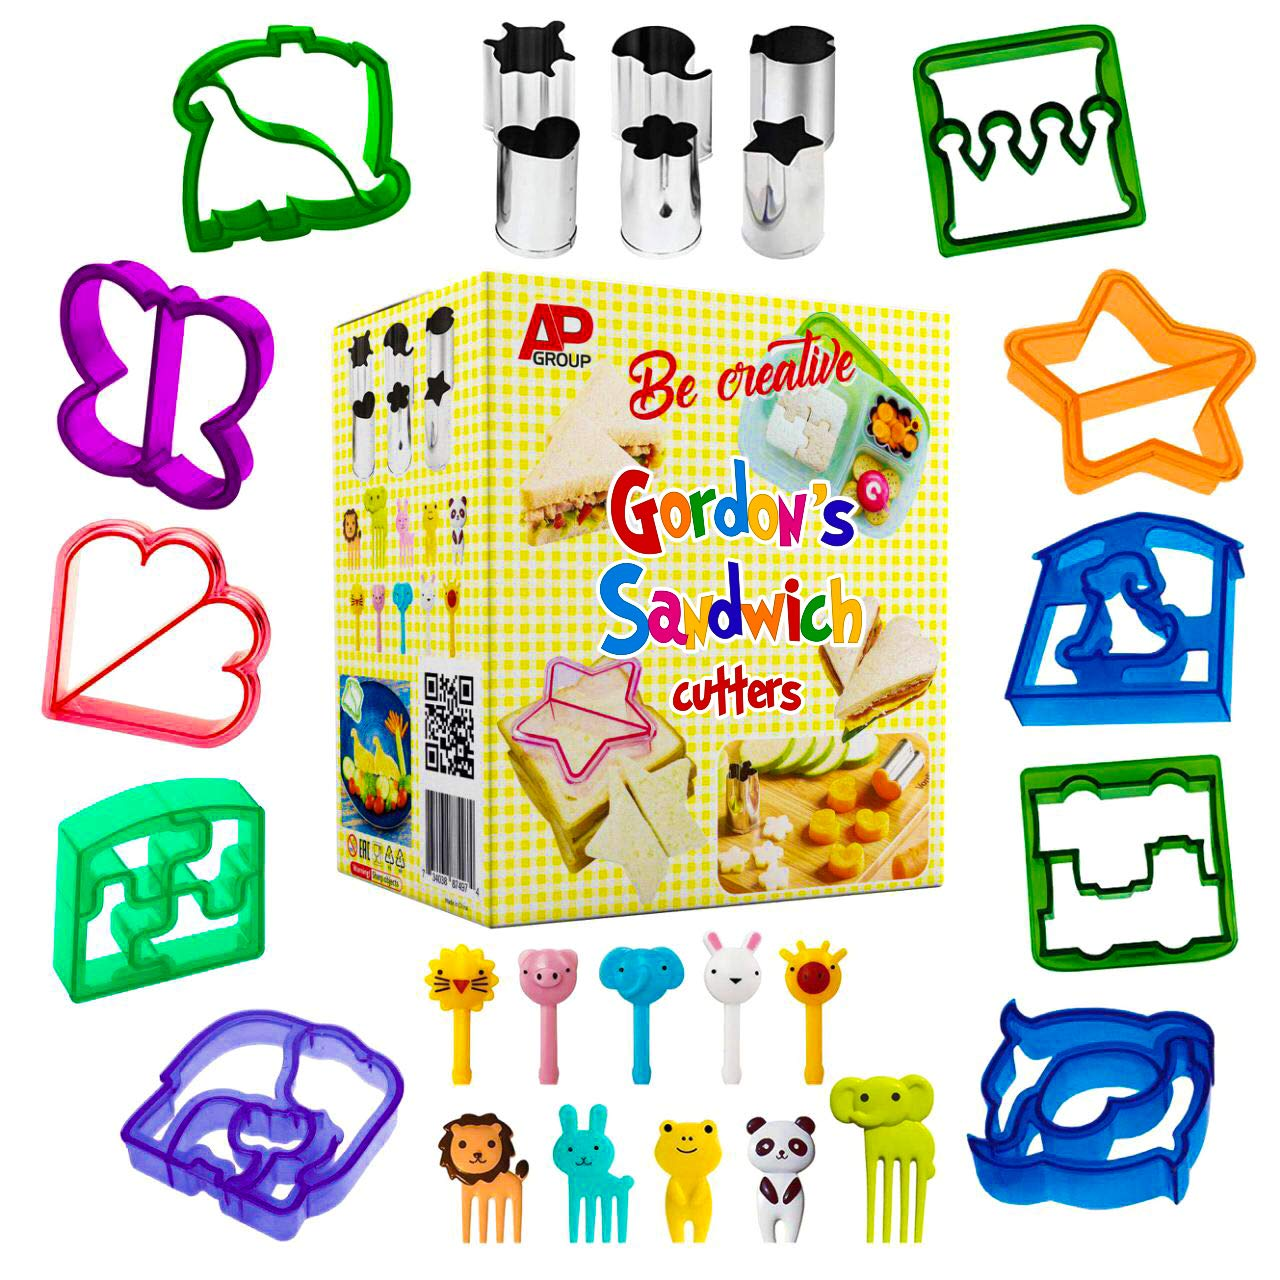 Sandwich Cutters for Kids | Funbite Food Cutter for Kids | Exciting and Innovative | Kids Friendly | 26 pieces set | Variant Sandwich Cutters | Vegetable and Cheese Stamps | Animal Shaped Food Picks | by Gordon's Sandwich Cutter (Image #1)